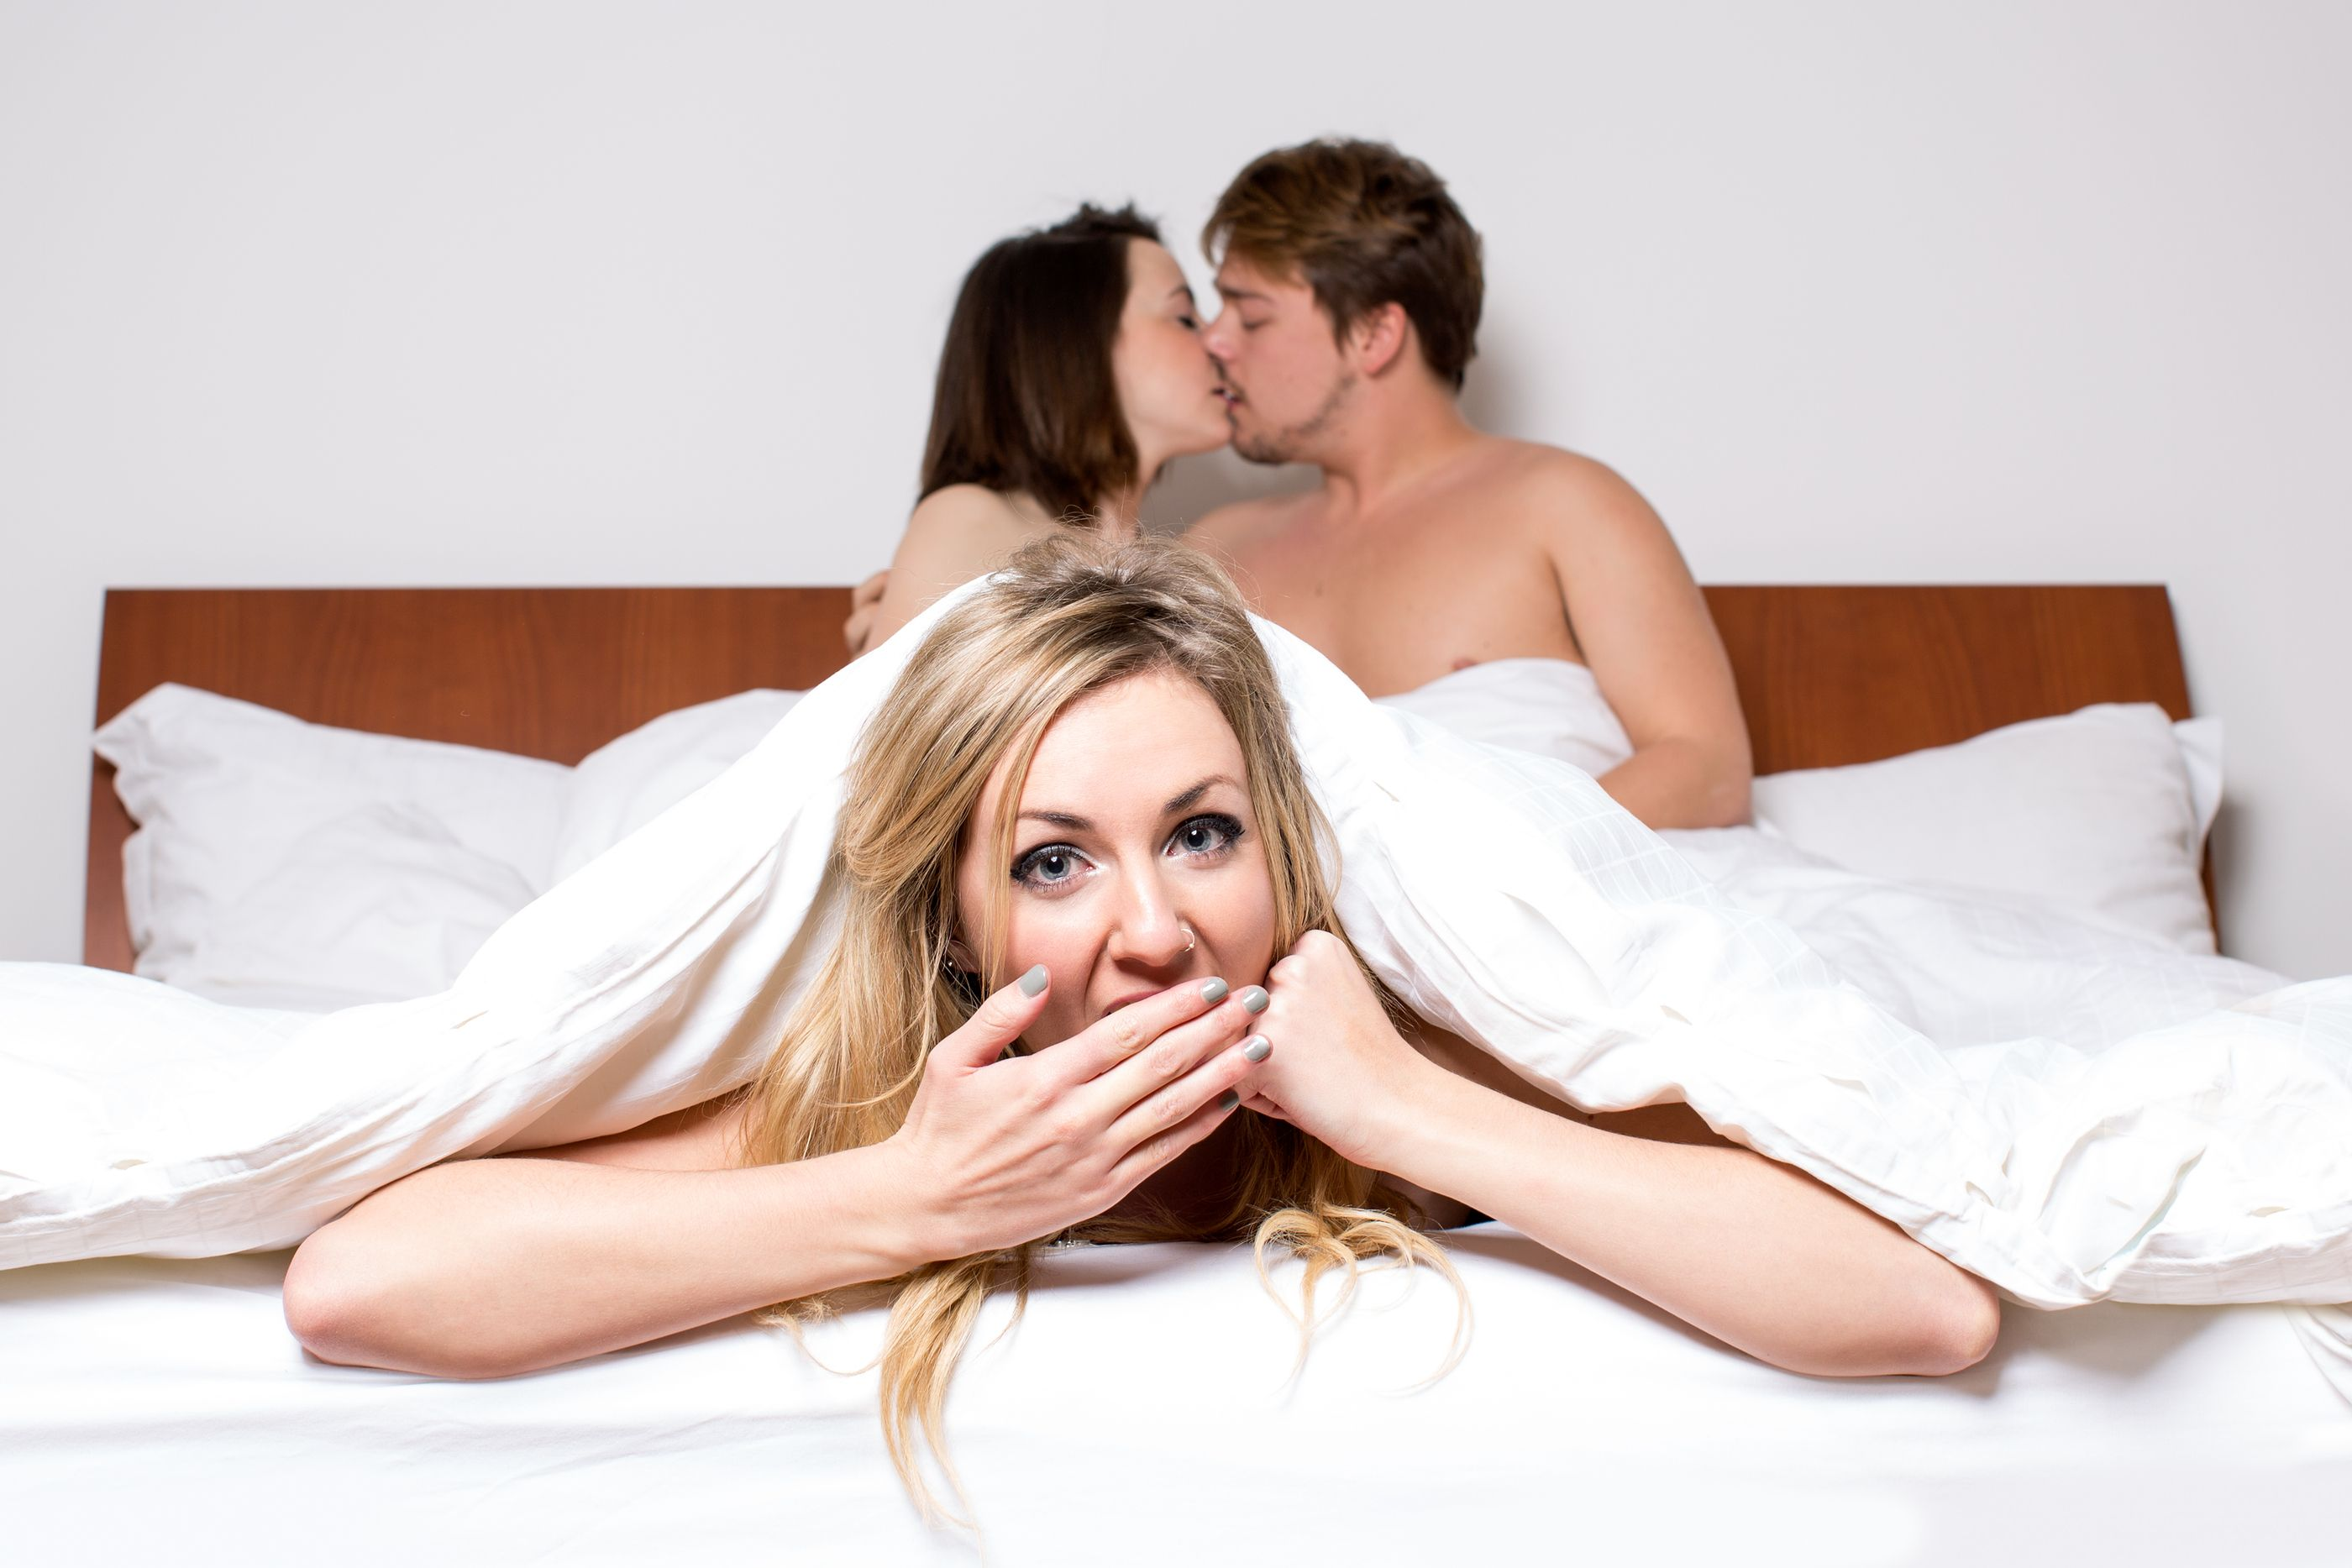 10 Signs You Should Stop Sleeping With Them